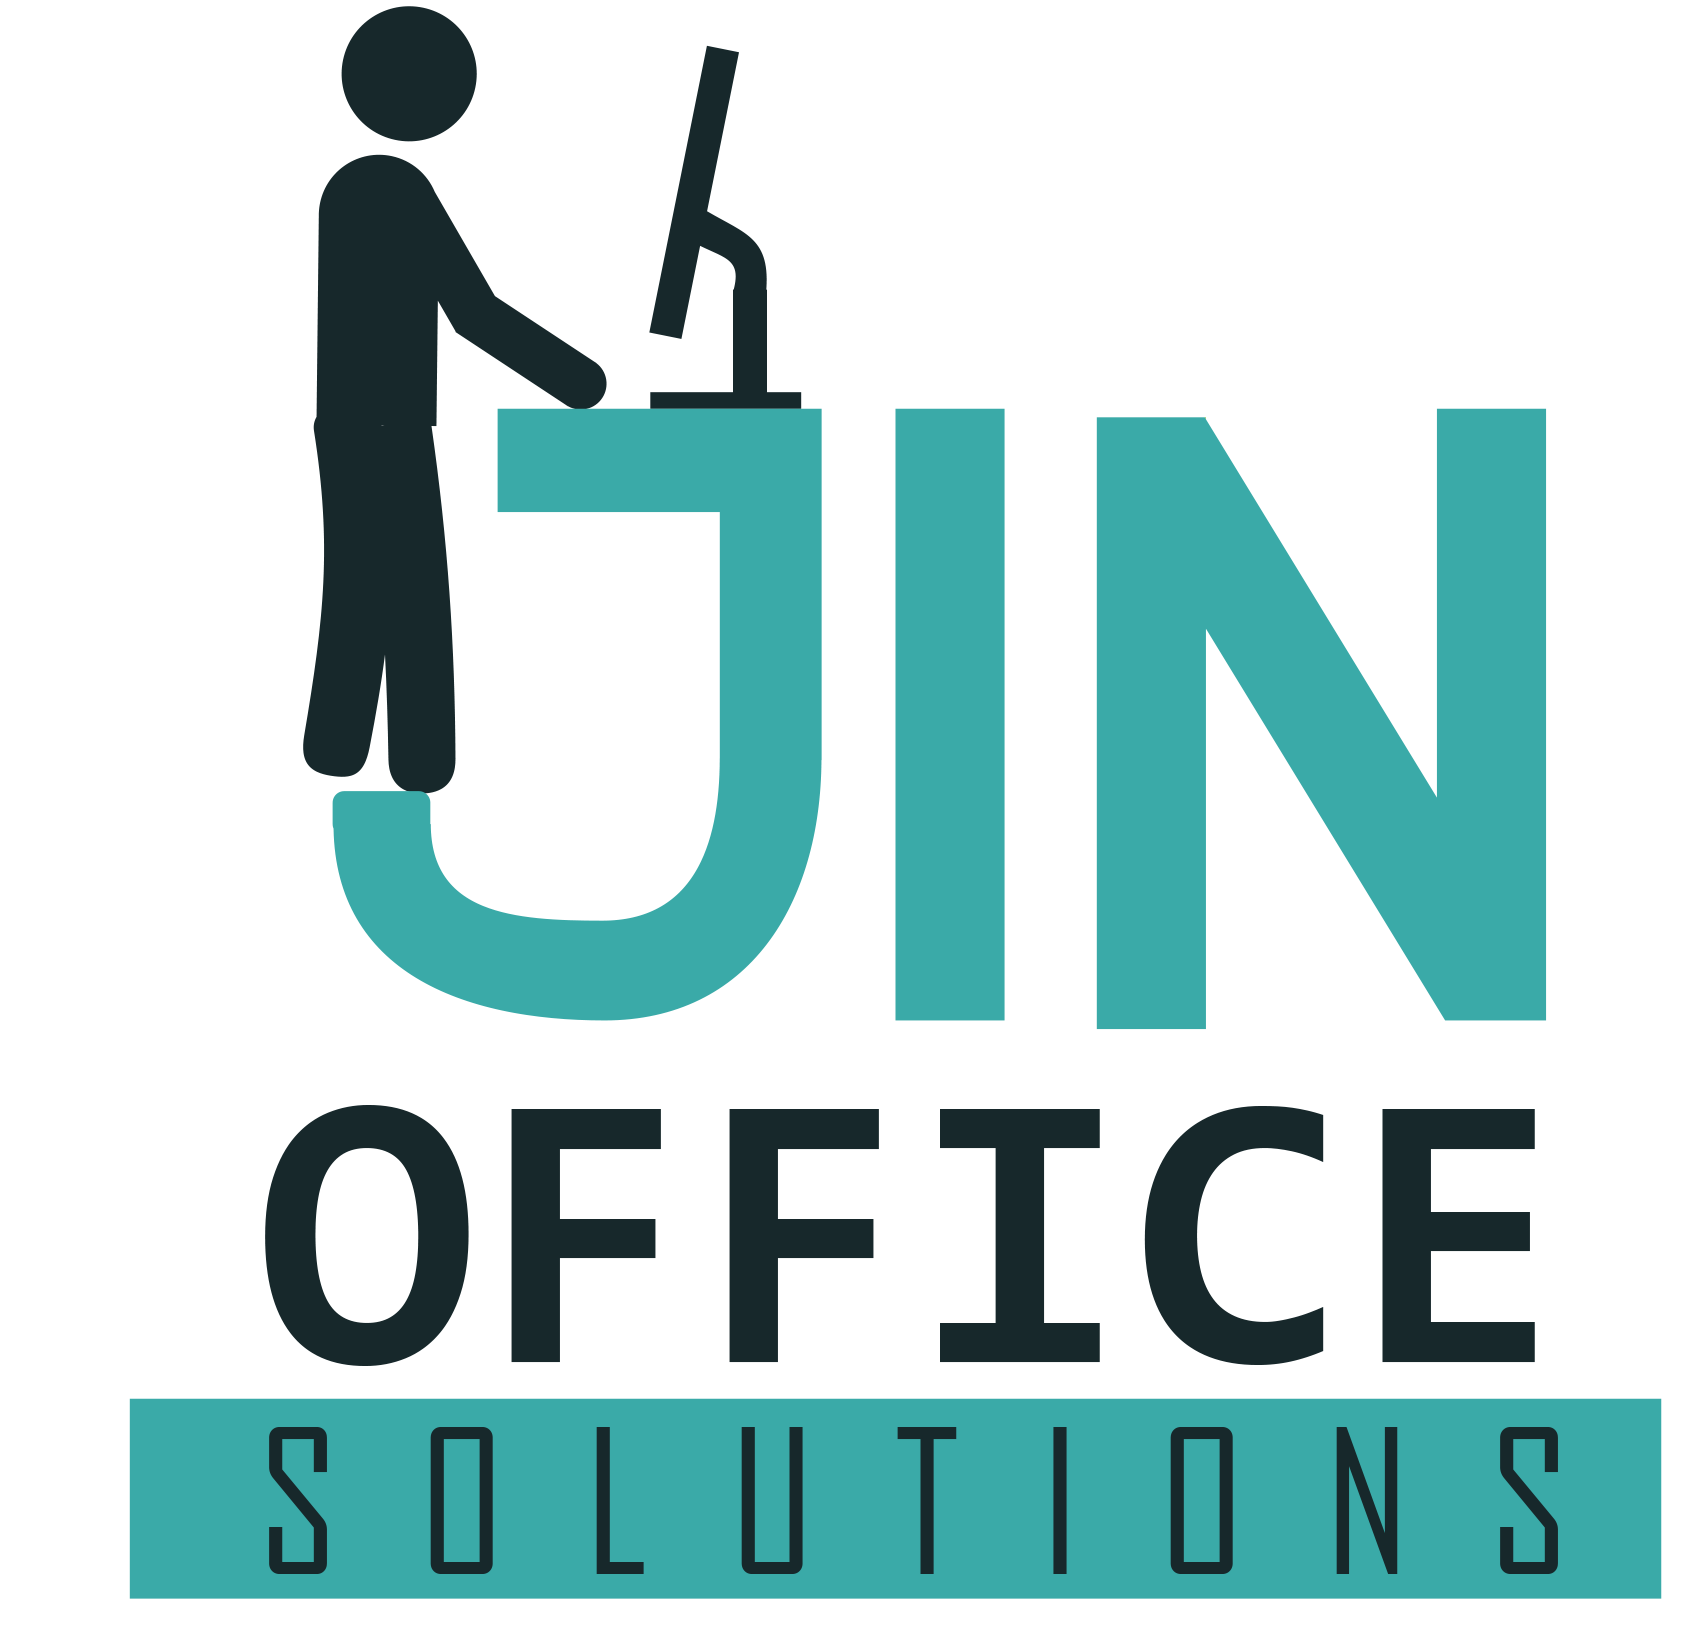 IT IS JIN OFFICE SOLUTIONS